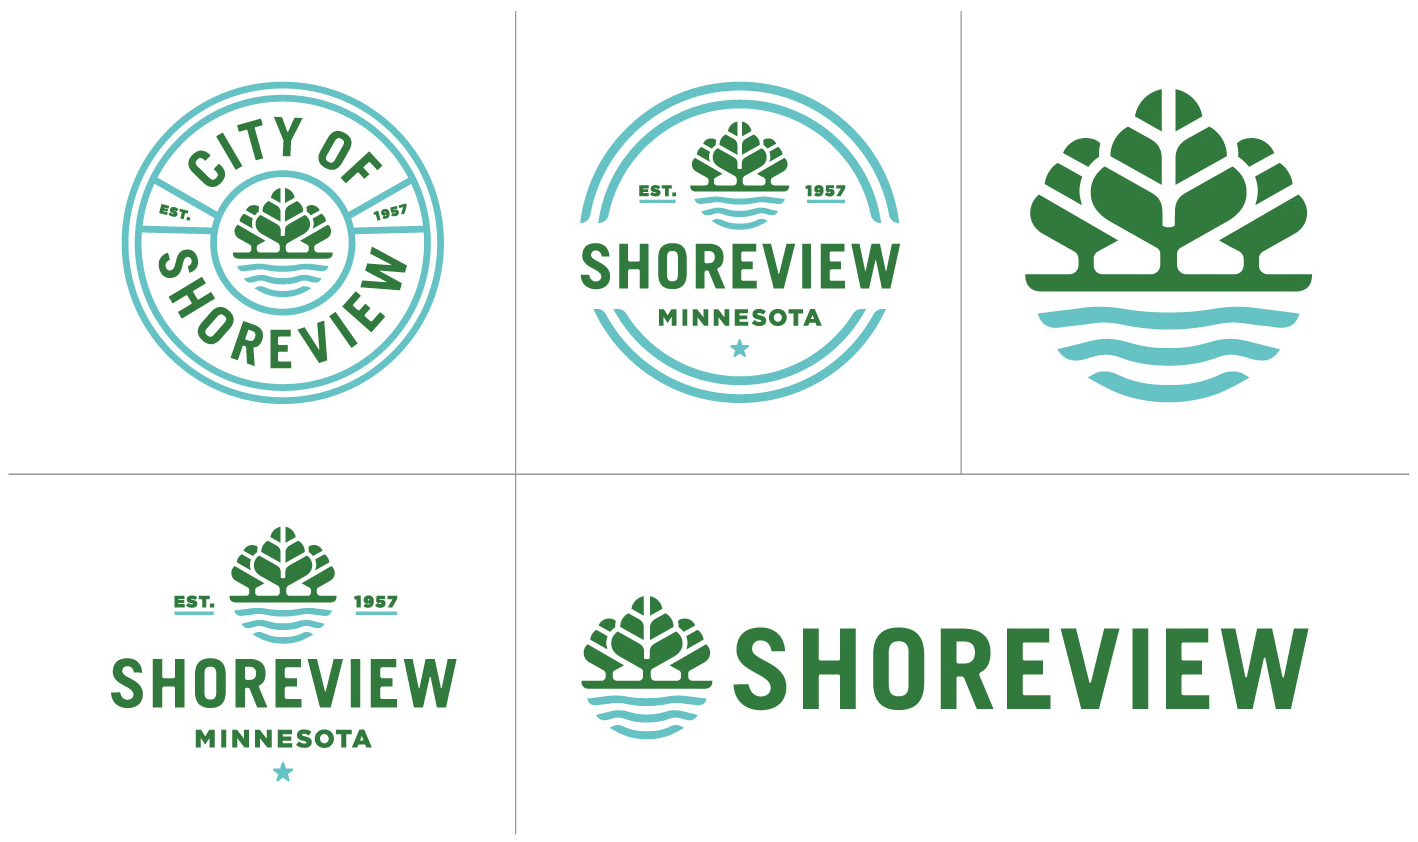 Brand New: New Logos for Shoreview, MN, by Peters Design Company.